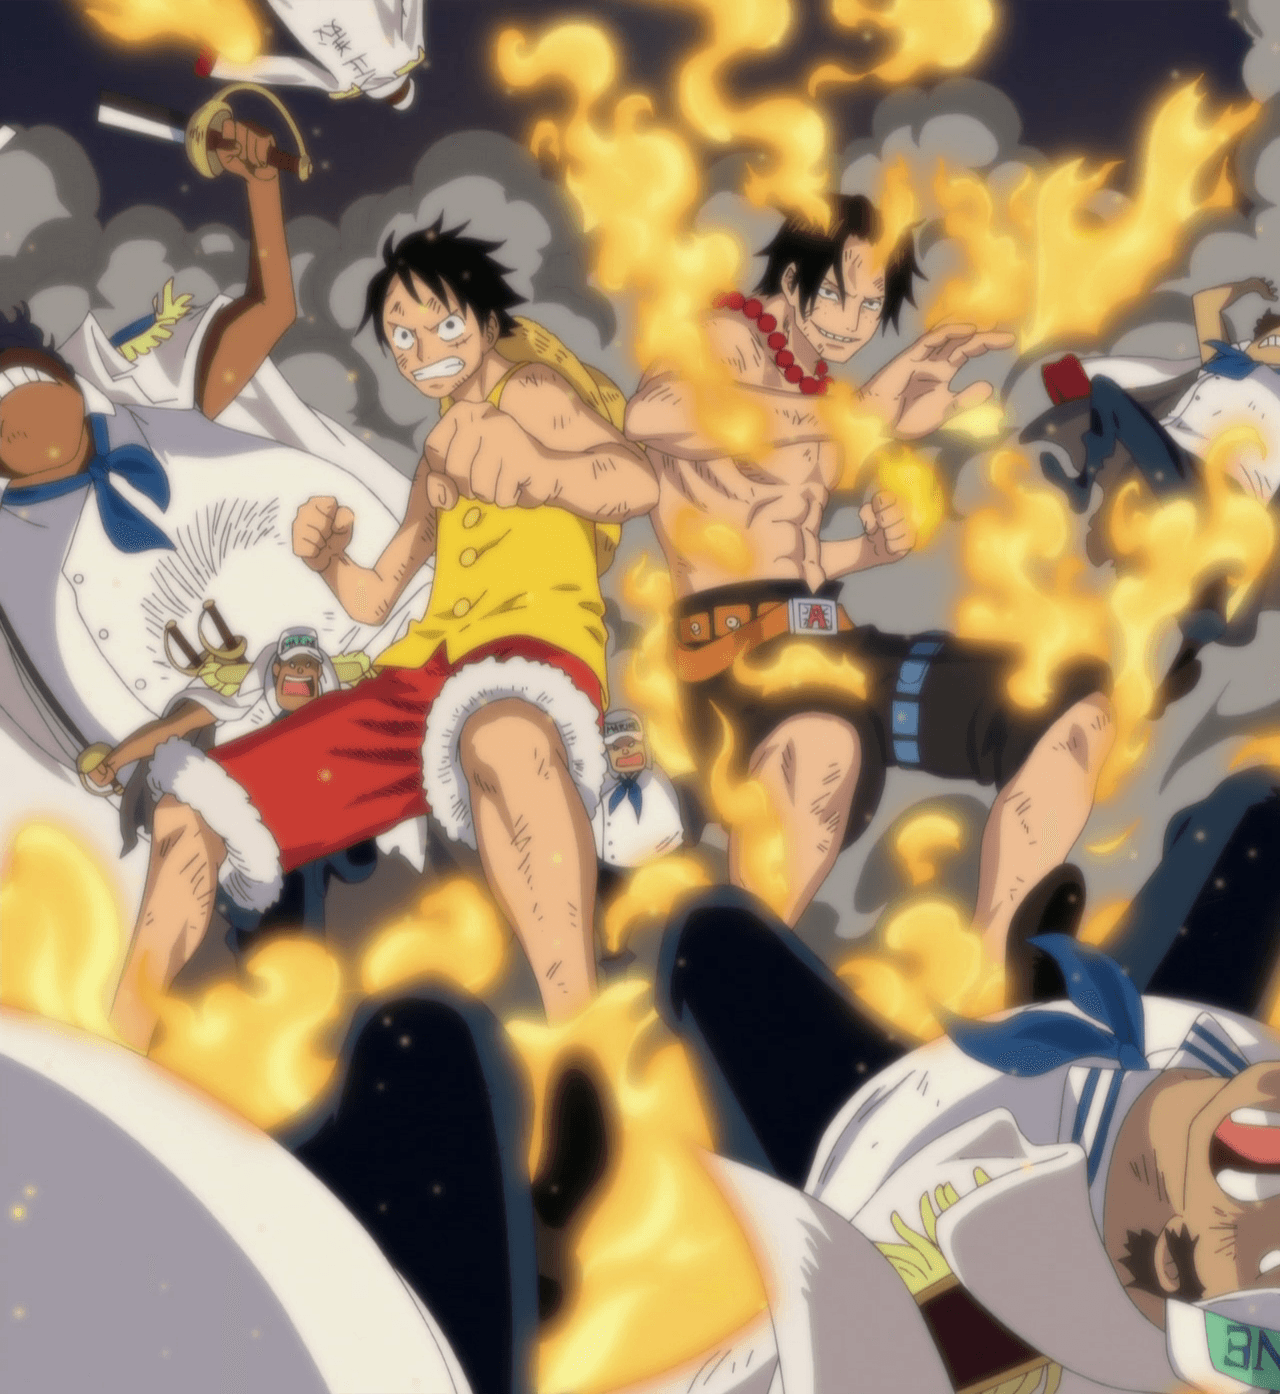 Ace And Luffy Fighting Against Marine Officers